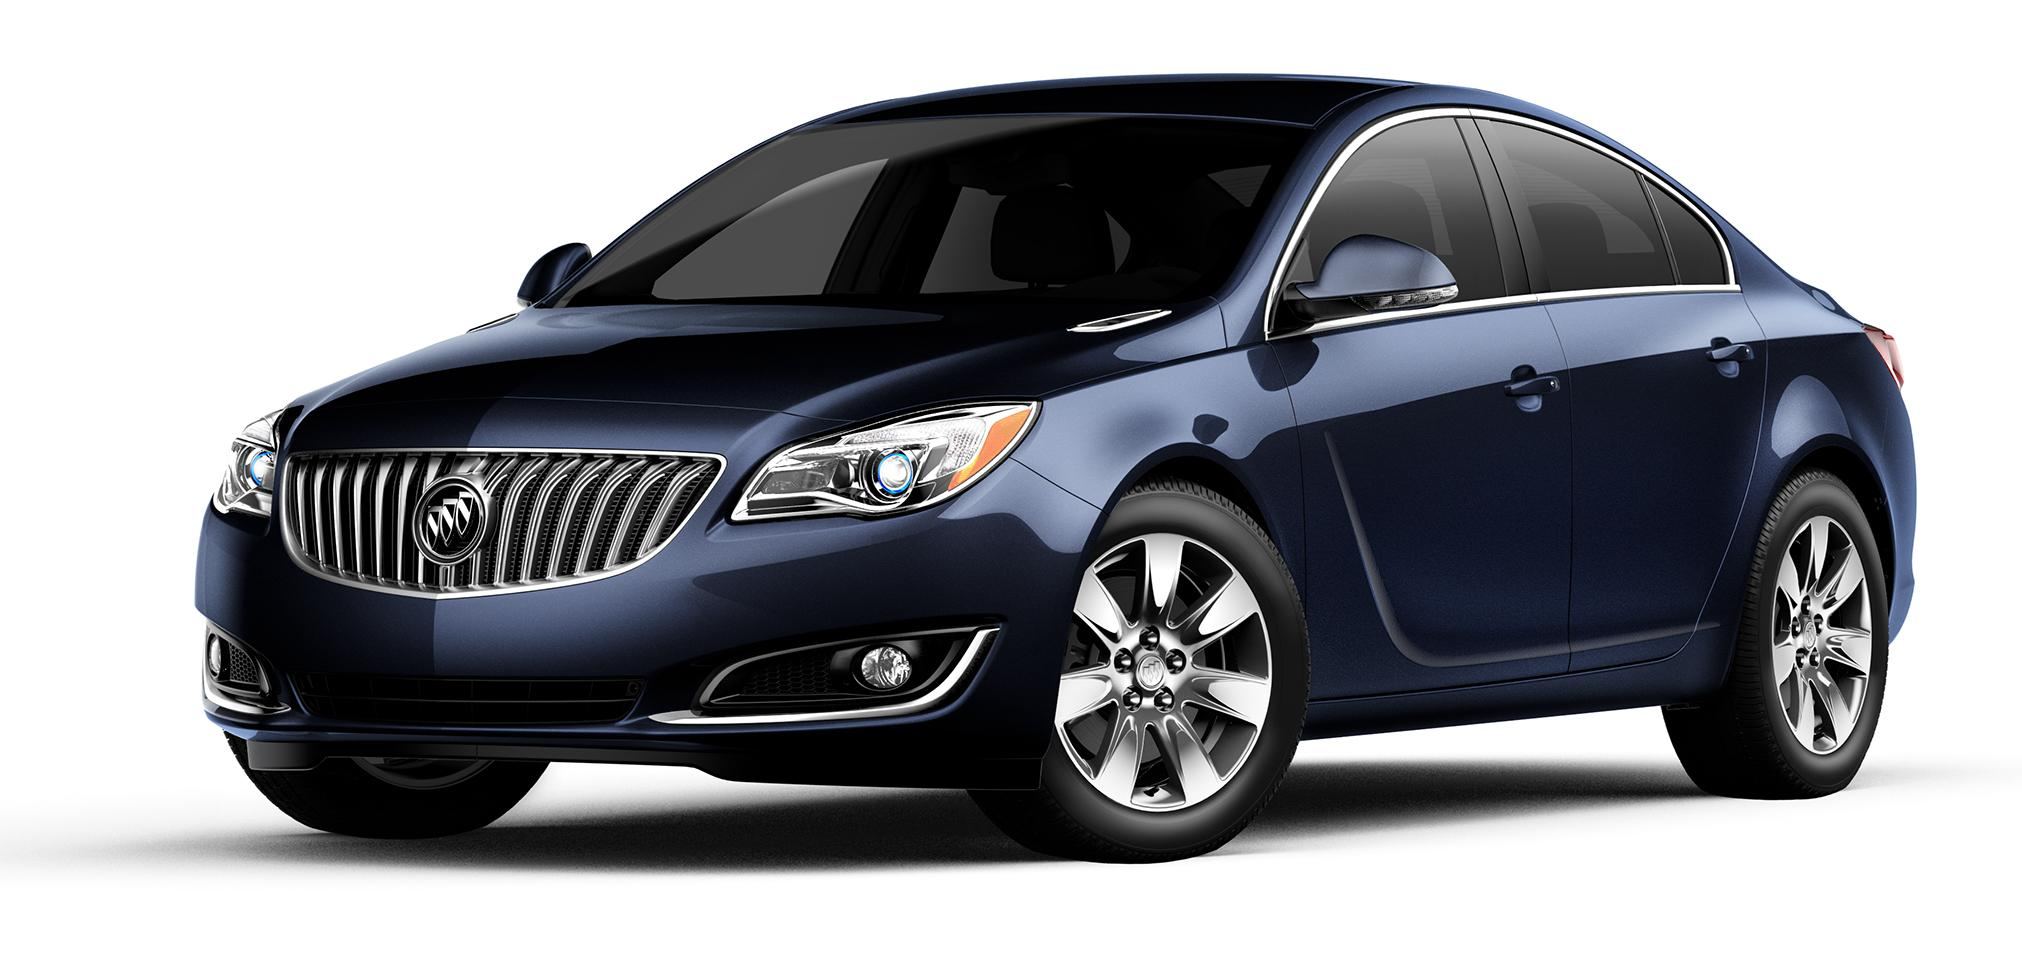 2017 Buick Regal Blue